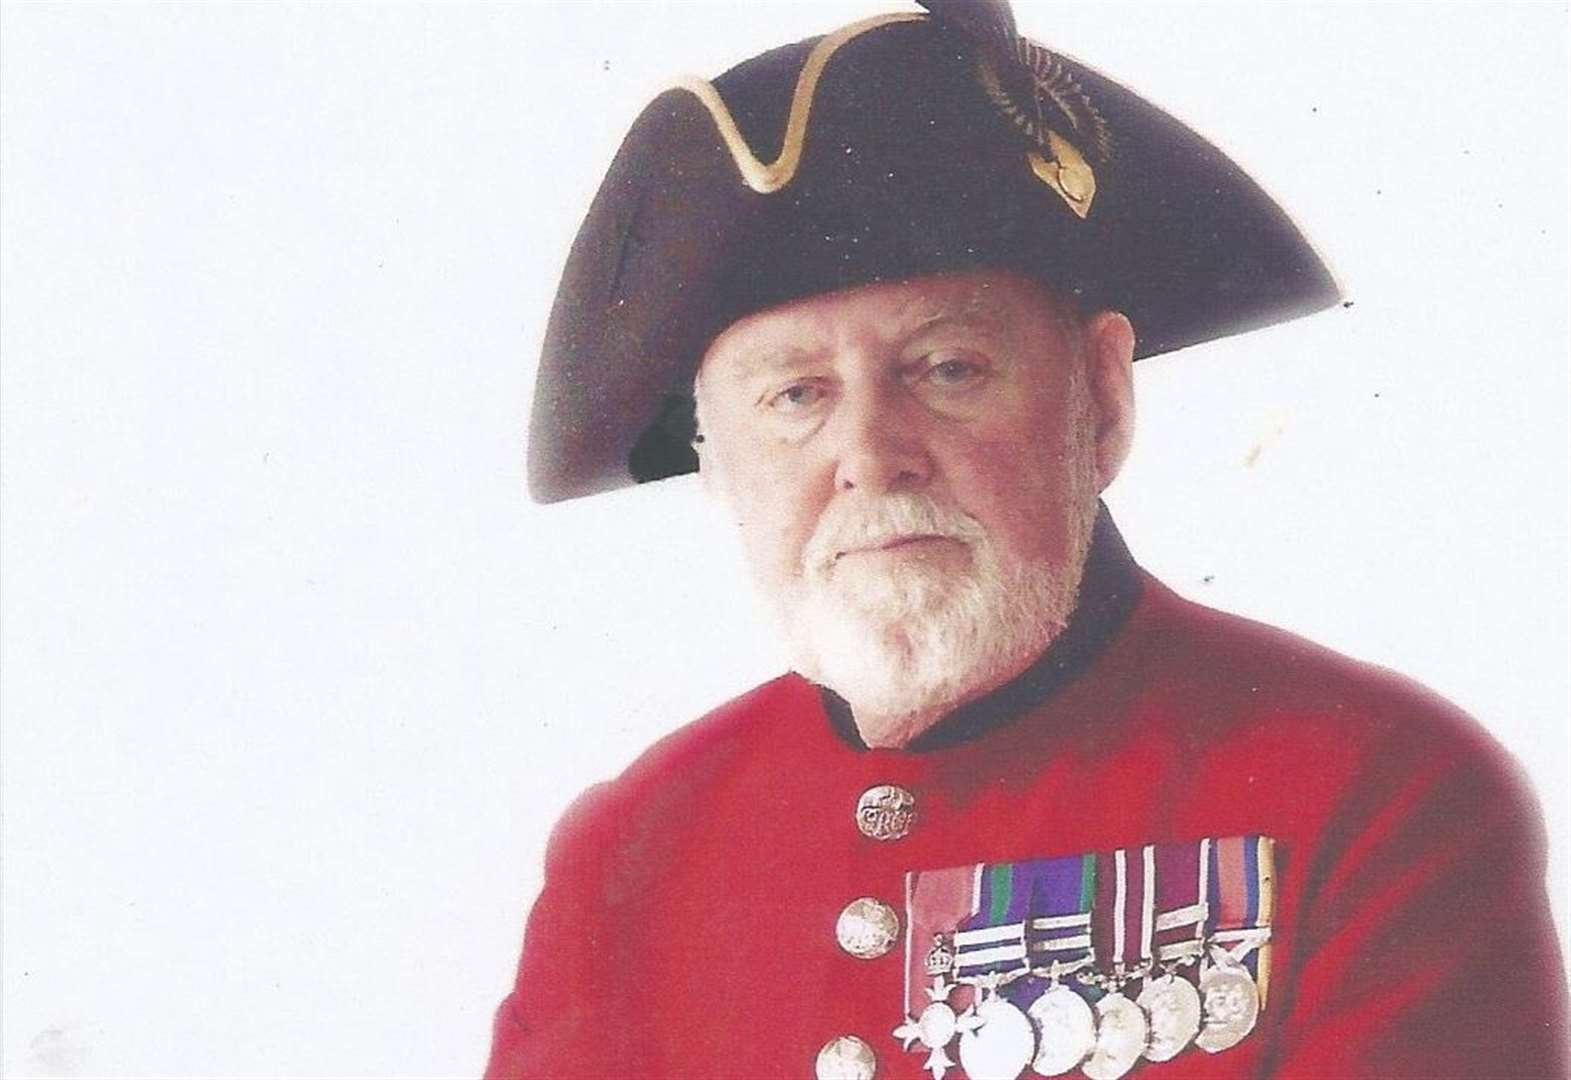 Chelsea pensioner to give talk in Rutland